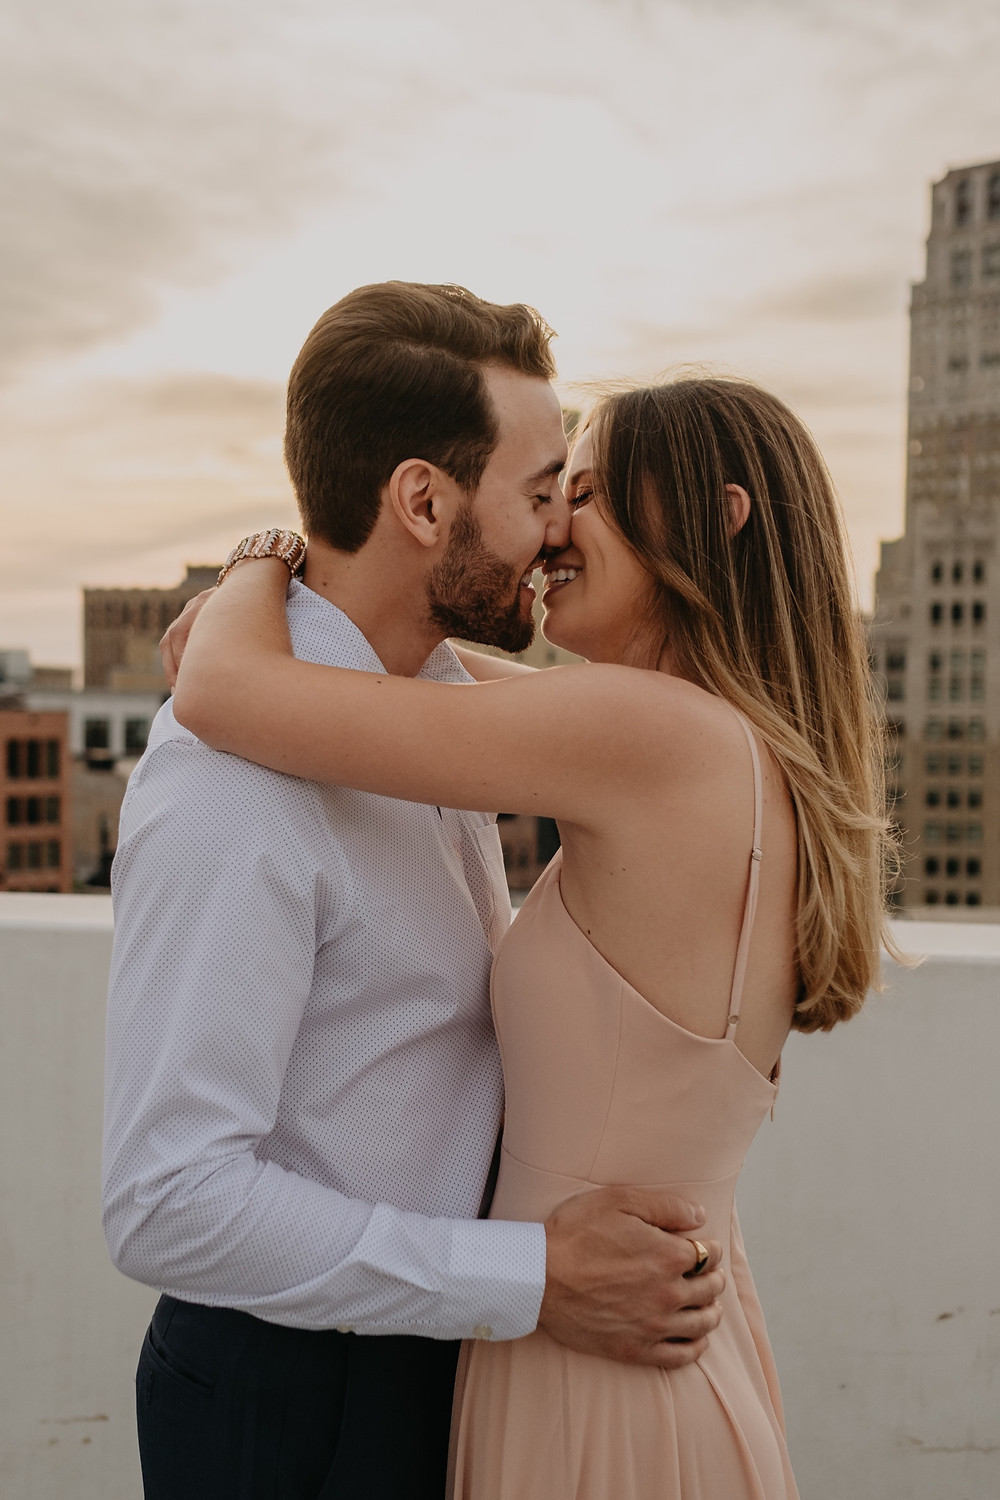 Rooftop engagement photos in Detroit. Photographed by Nicole Leanne Photography.